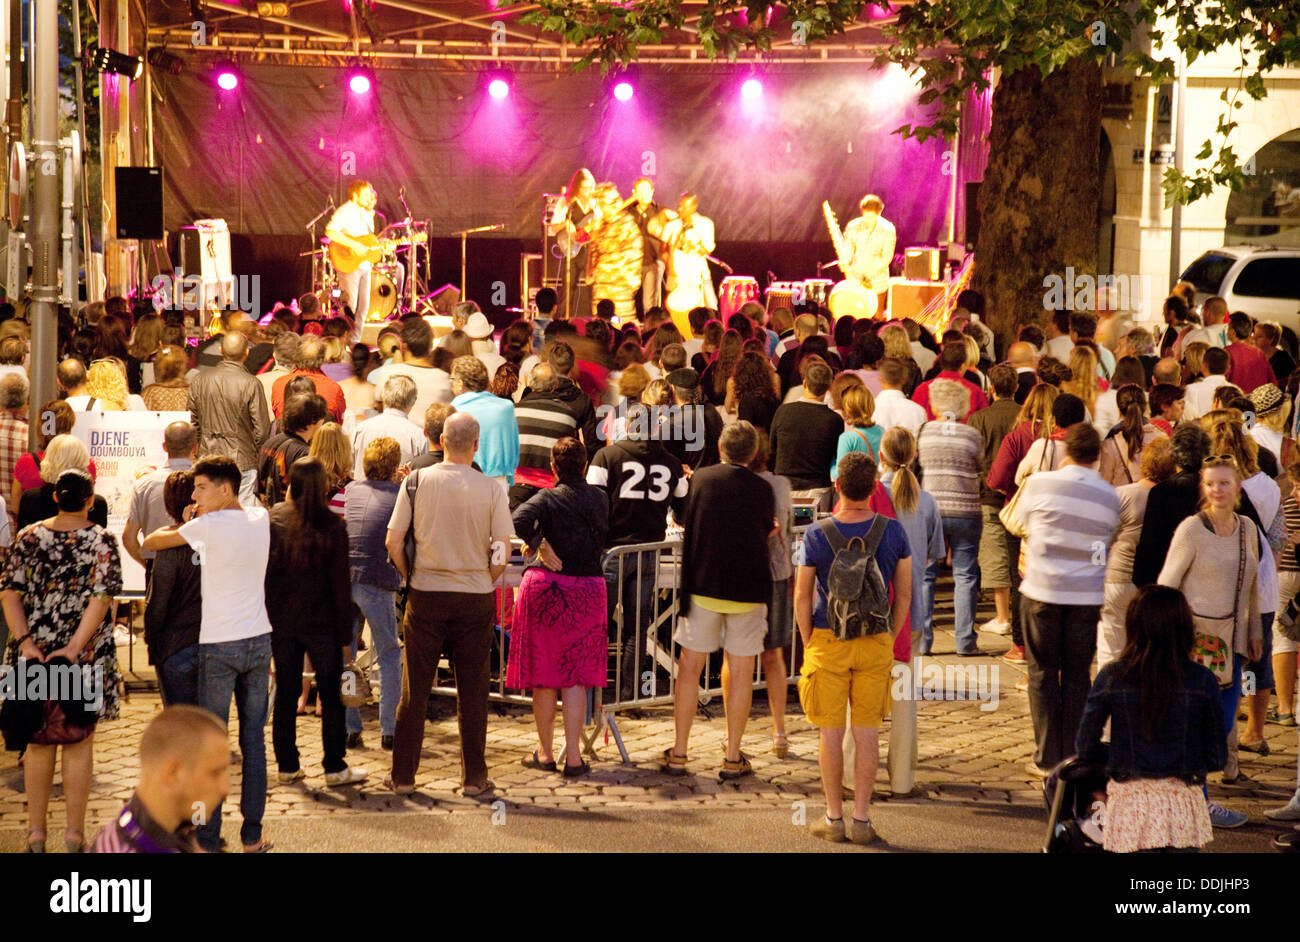 An evening open air concert in the town centre square, Blois, Loir et Cler, the Loire, France Europe - Stock Image